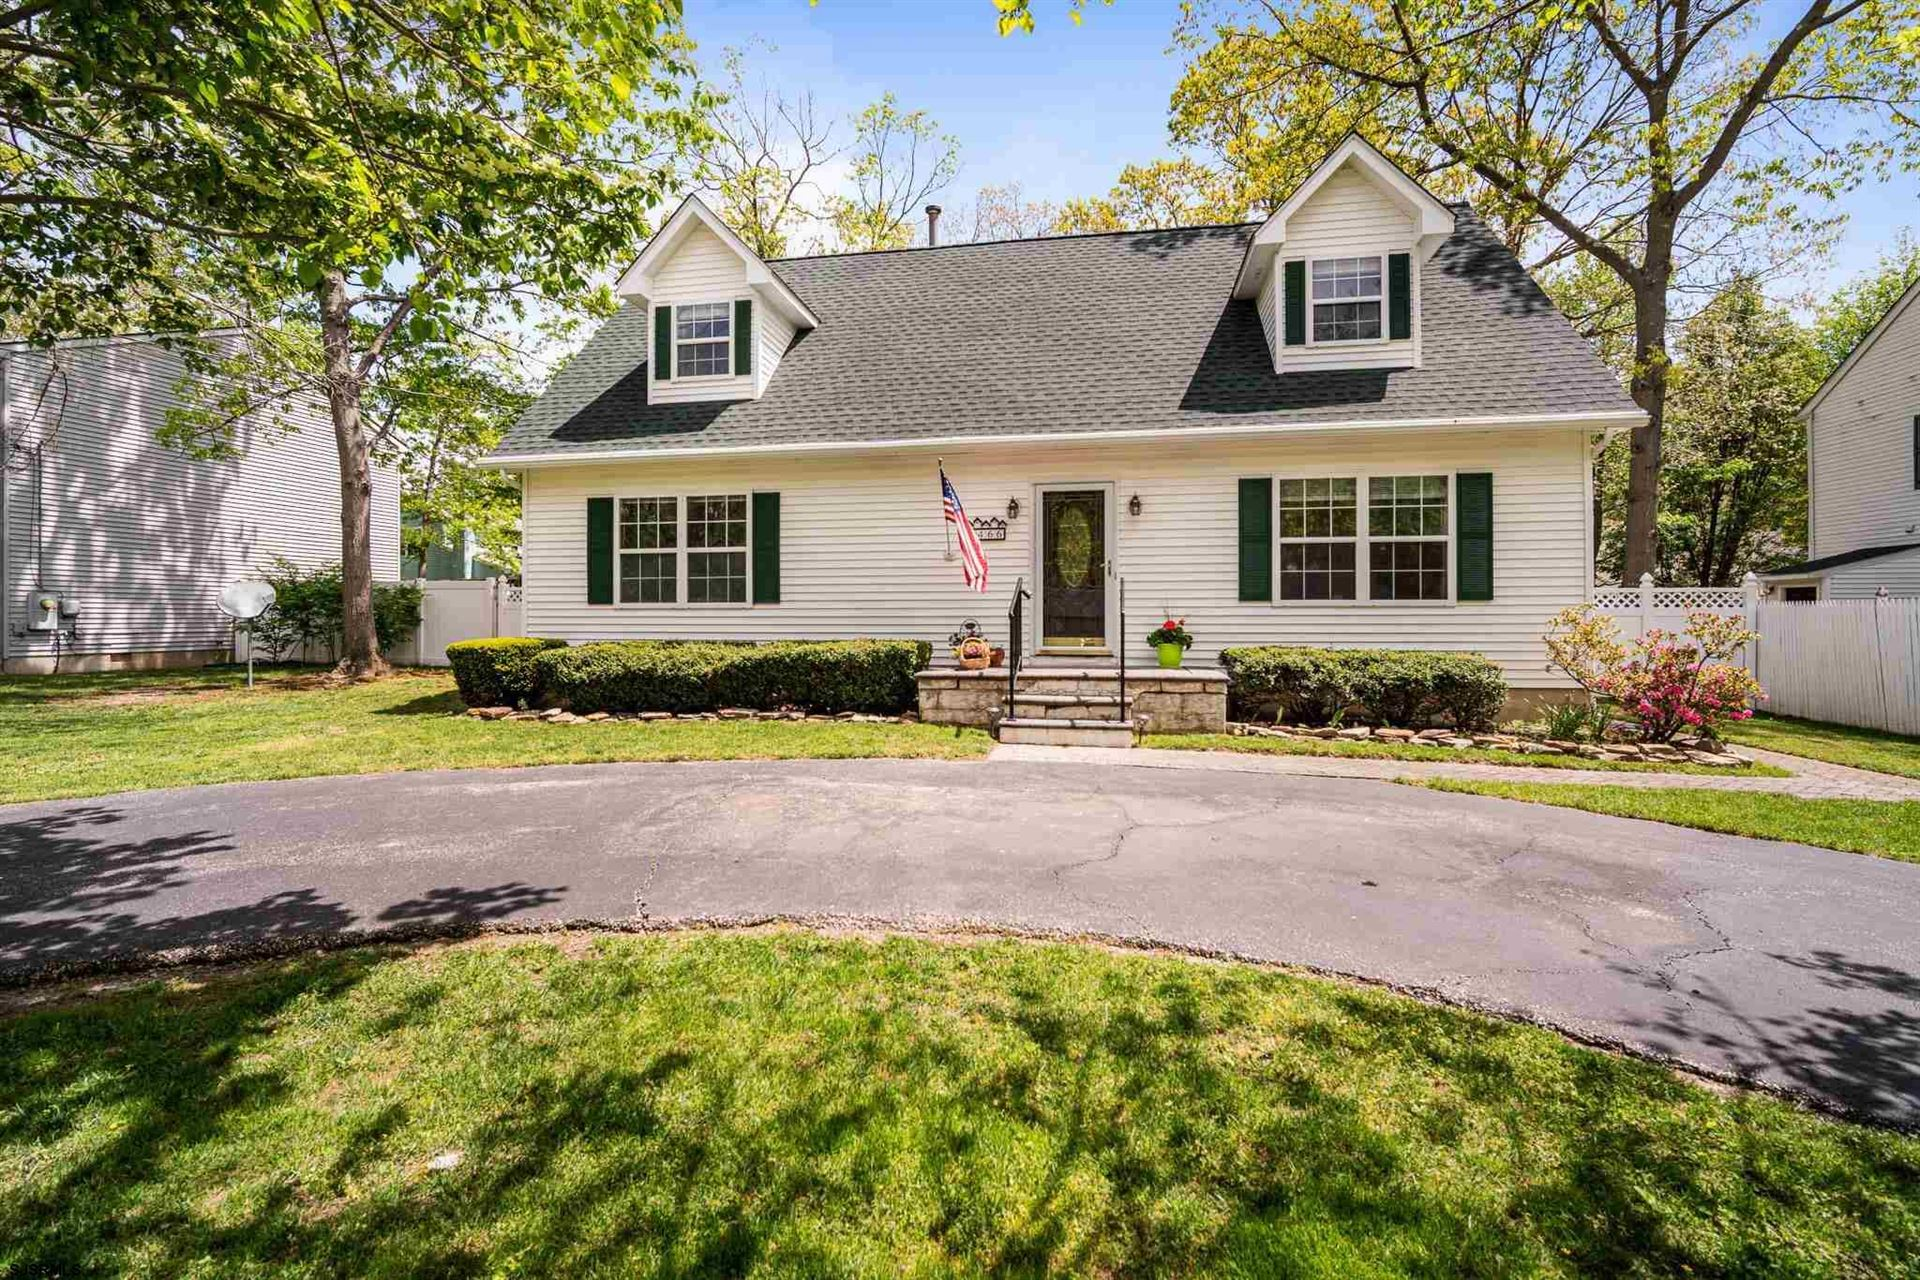 466 S Quince Ave, Galloway, NJ 08205 - #: 550267